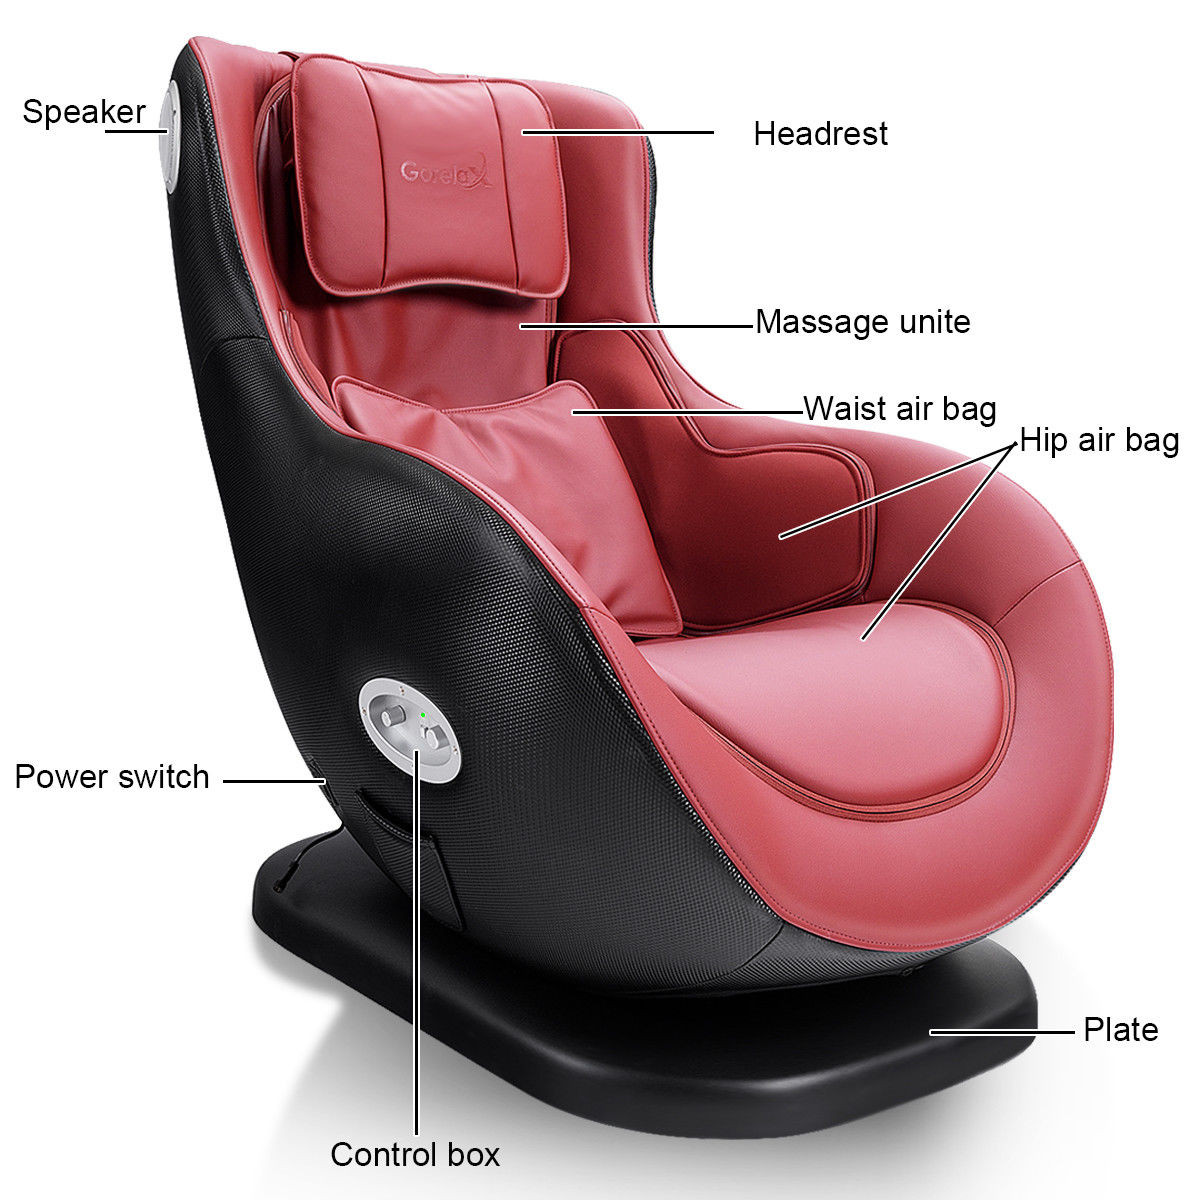 Luxury Massage Chair Heated W/ Bluetooth Speaker &USB Charger - image 4 of 10